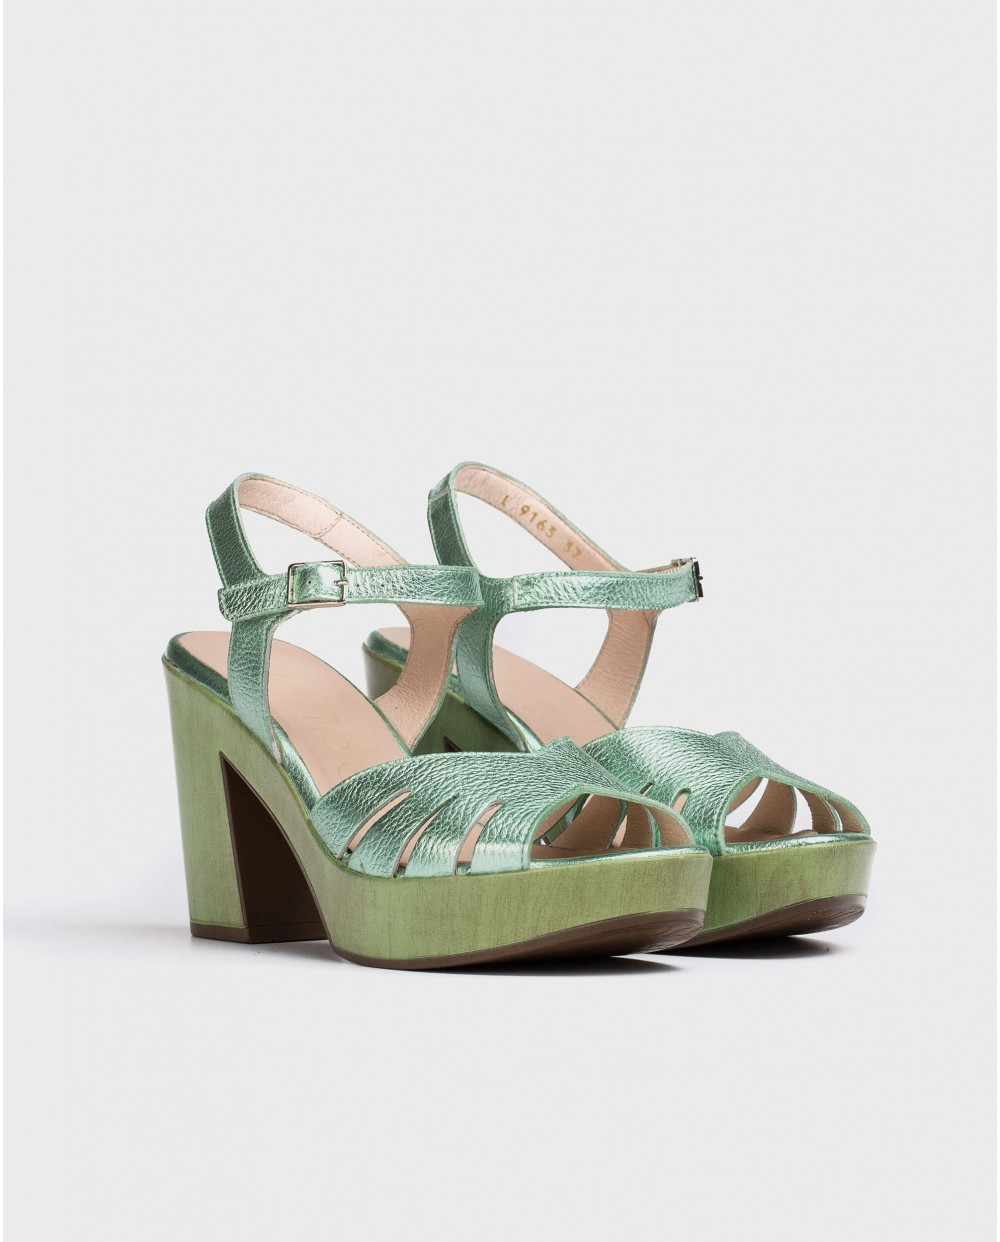 Wonders-Heels-Leather sandal with side cut out detail